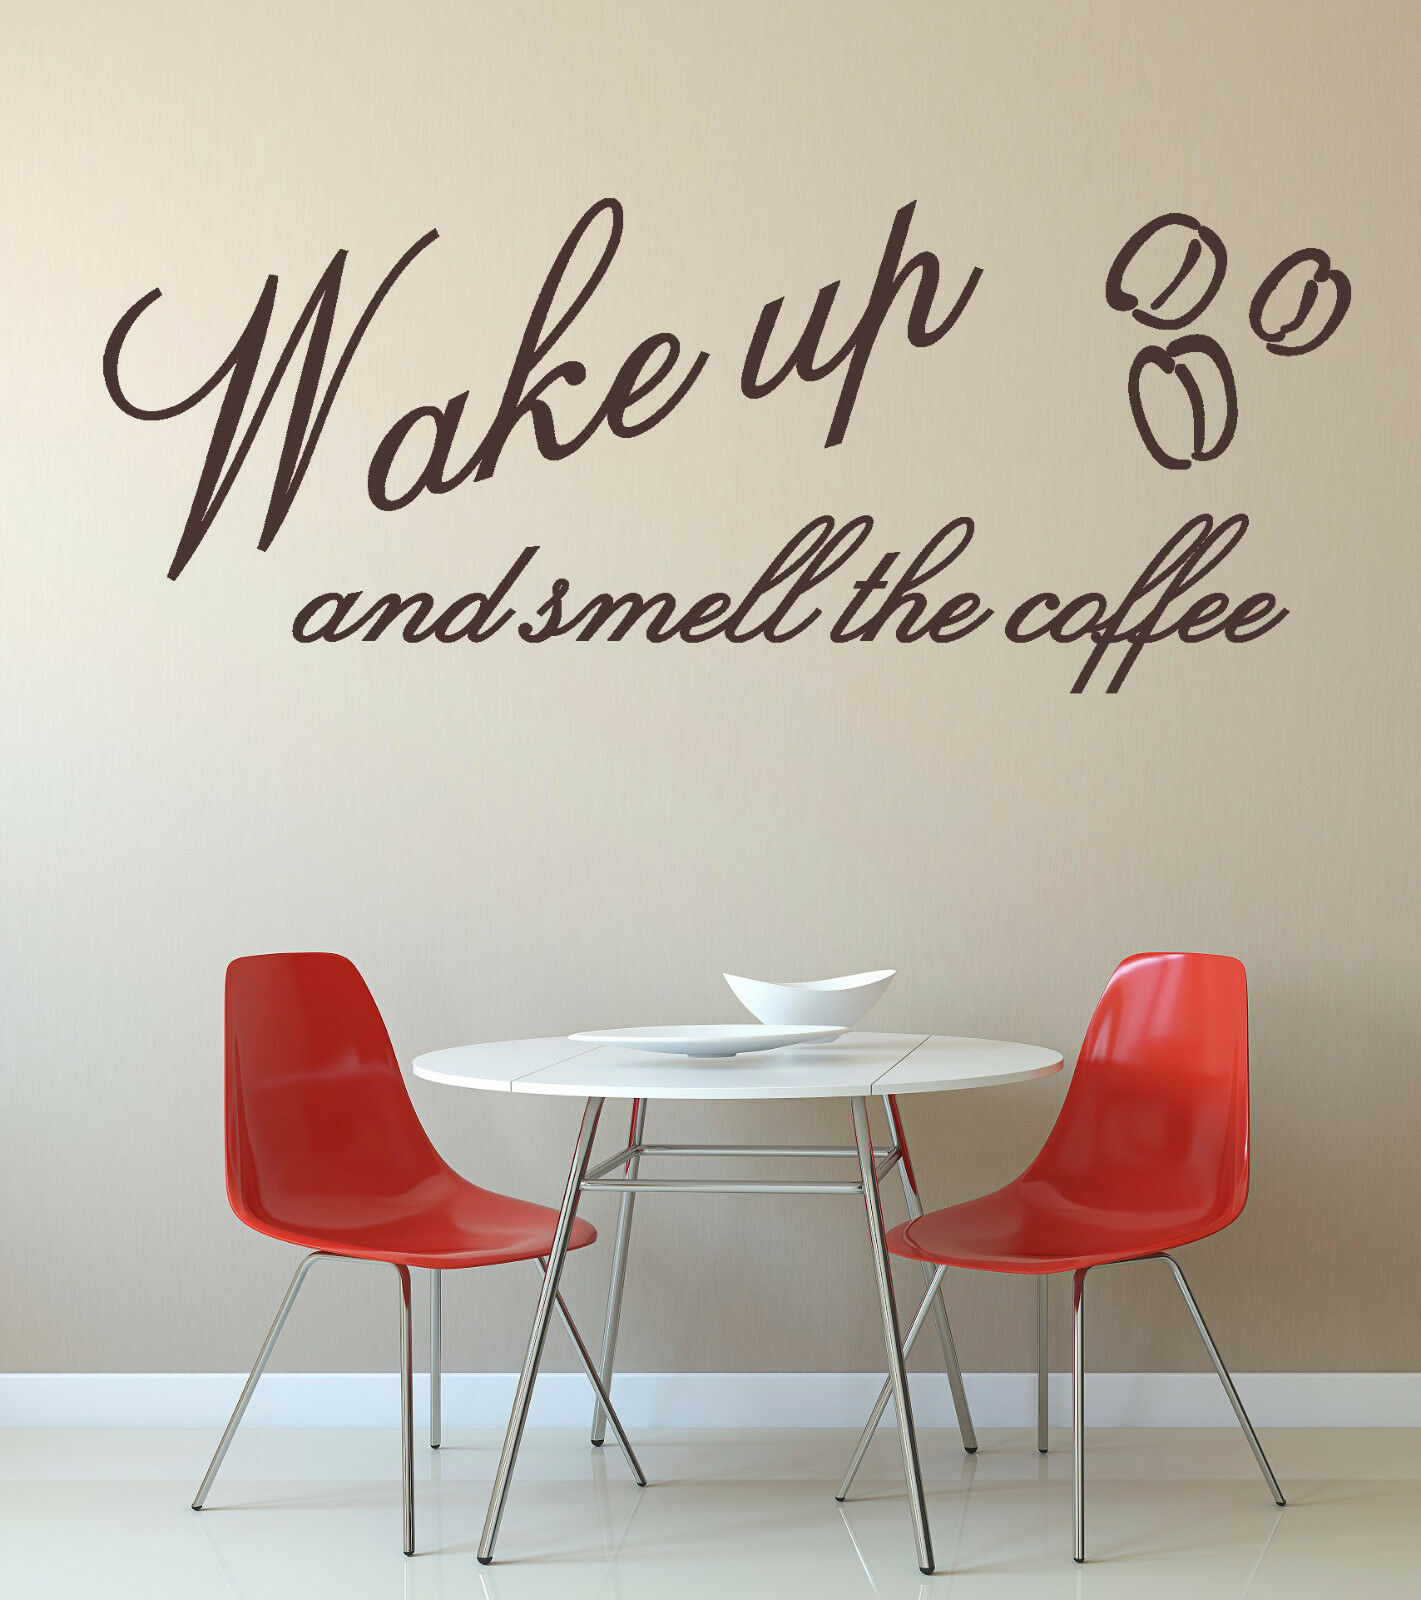 wall decals stickers home decor home furniture diy wake up smell coffee vinyl wall art sticker mural decal kitchen cafe